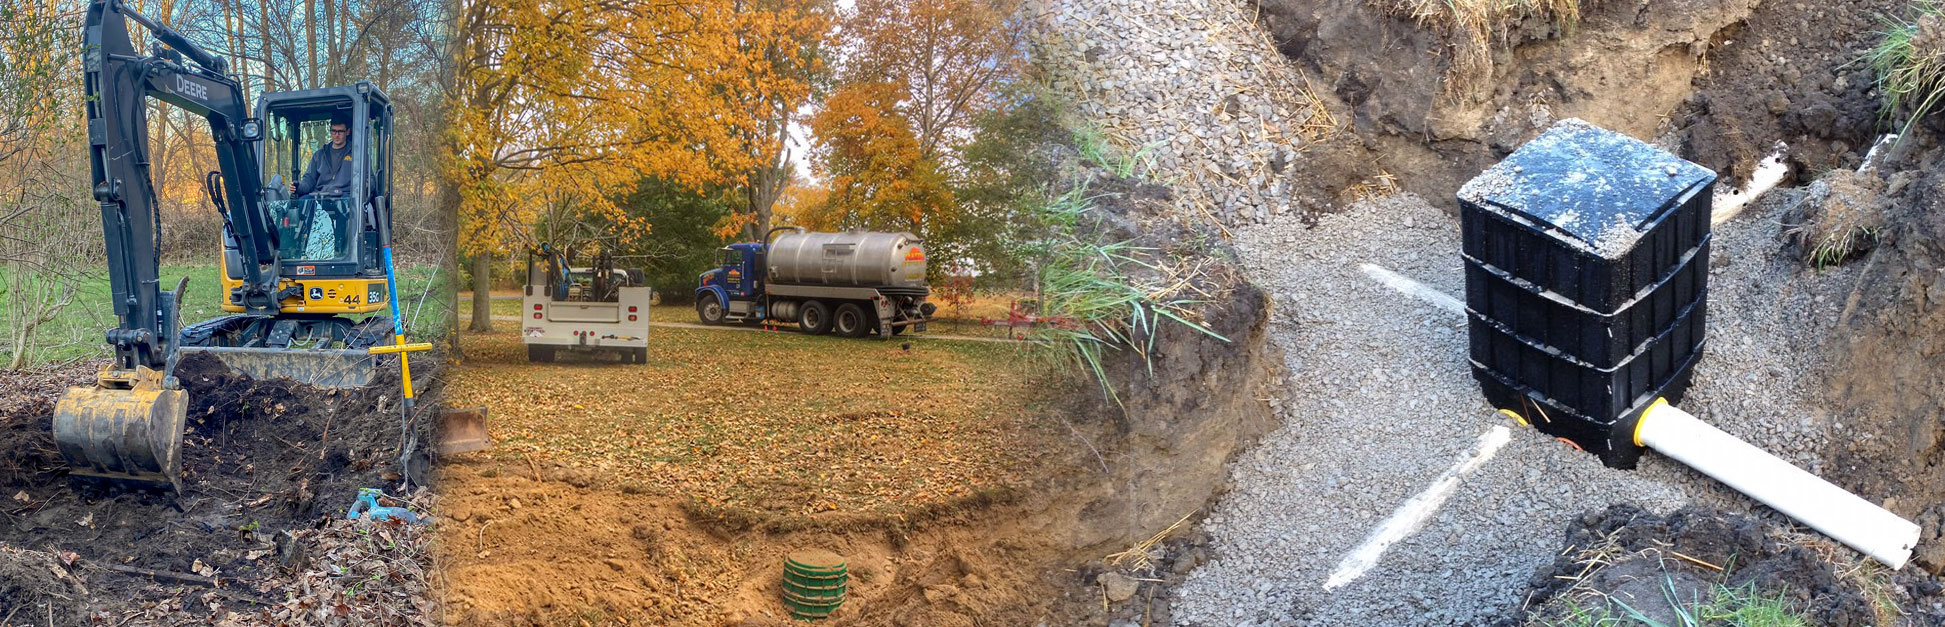 Septic system installation in Bowling Green Ohio